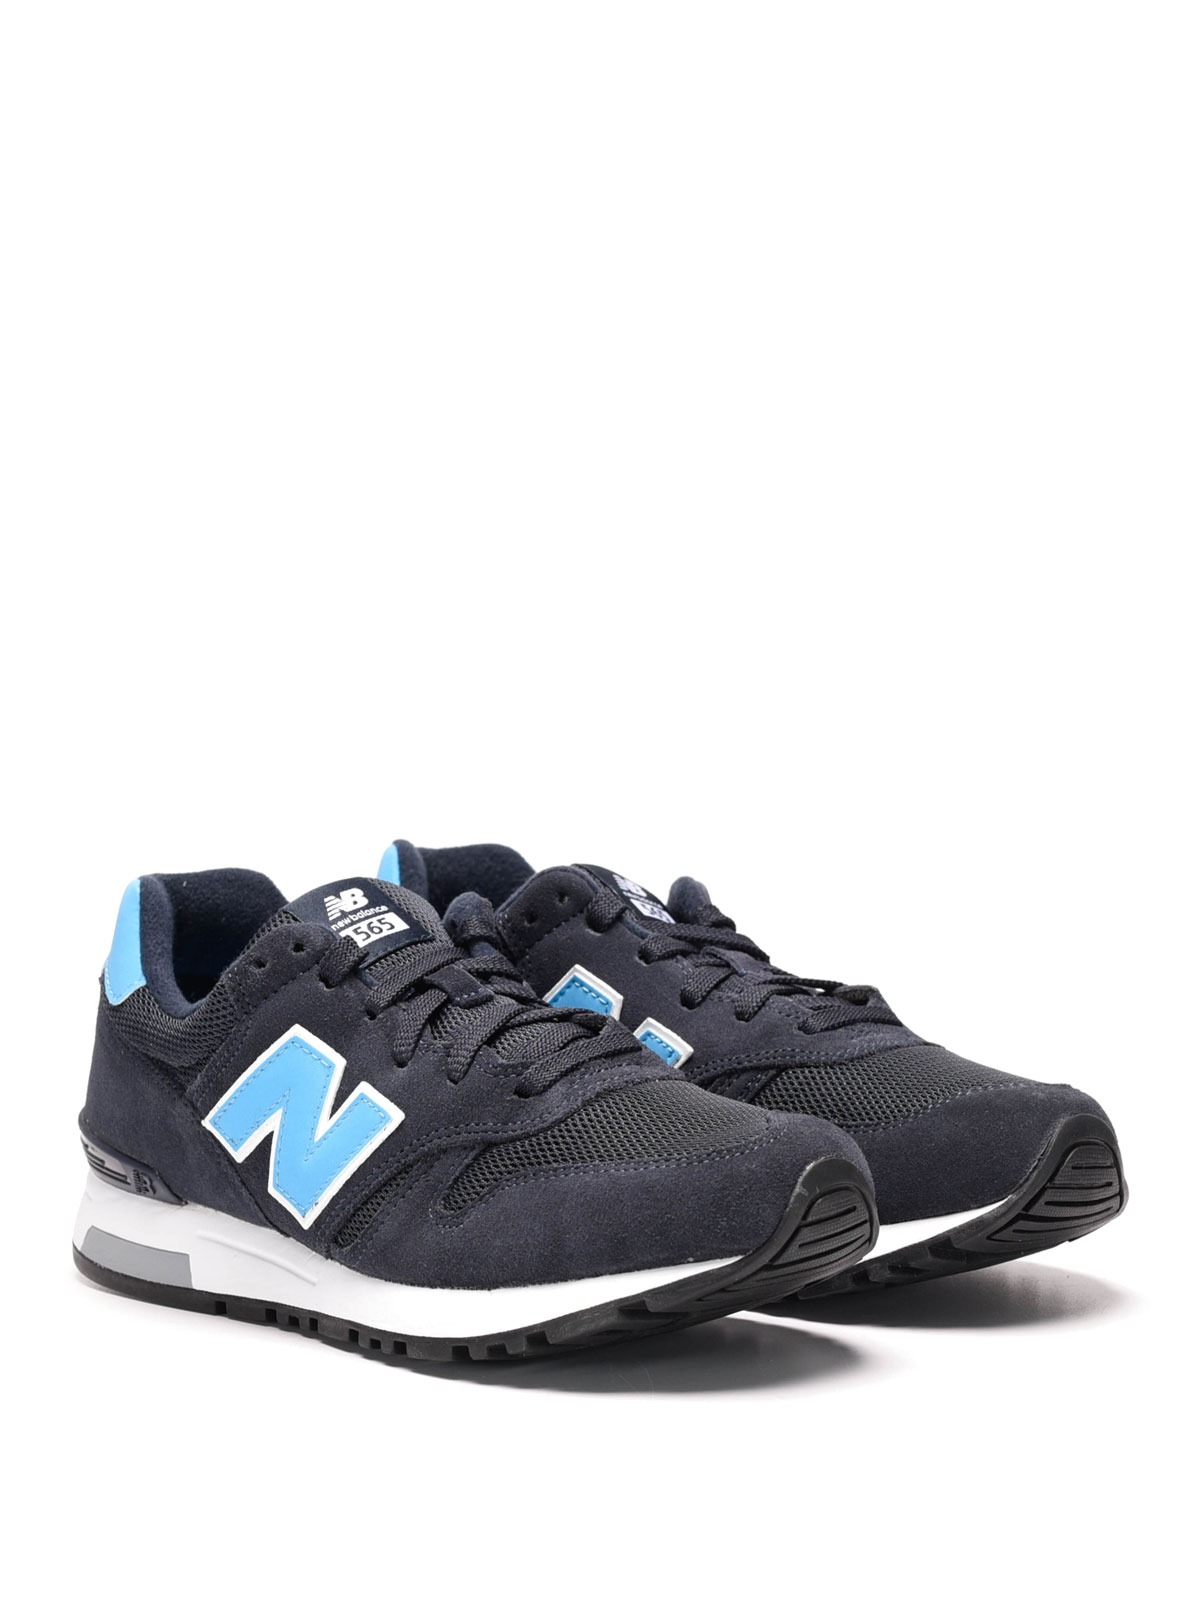 565 suede and techno mesh sneakers by new balance trainers ikrix. Black Bedroom Furniture Sets. Home Design Ideas